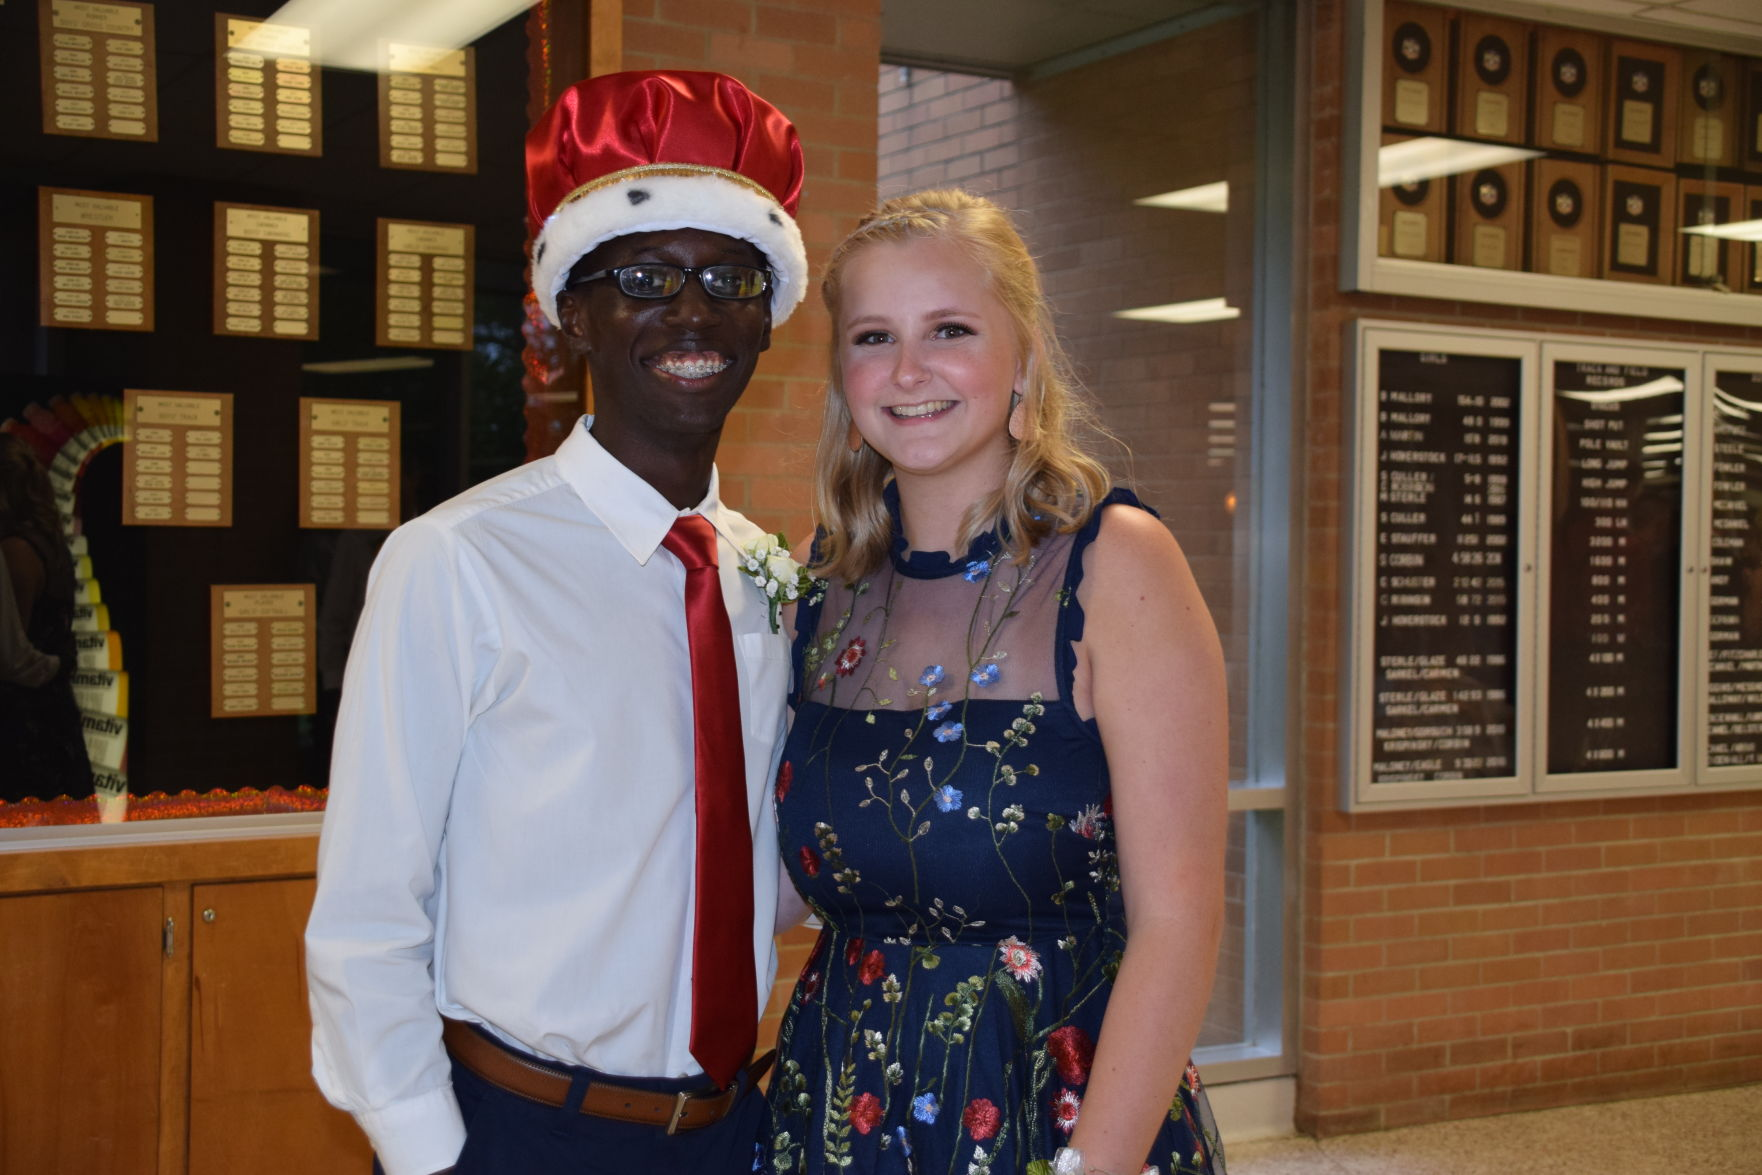 GALLERY: 2018 Ashland High School Homecoming